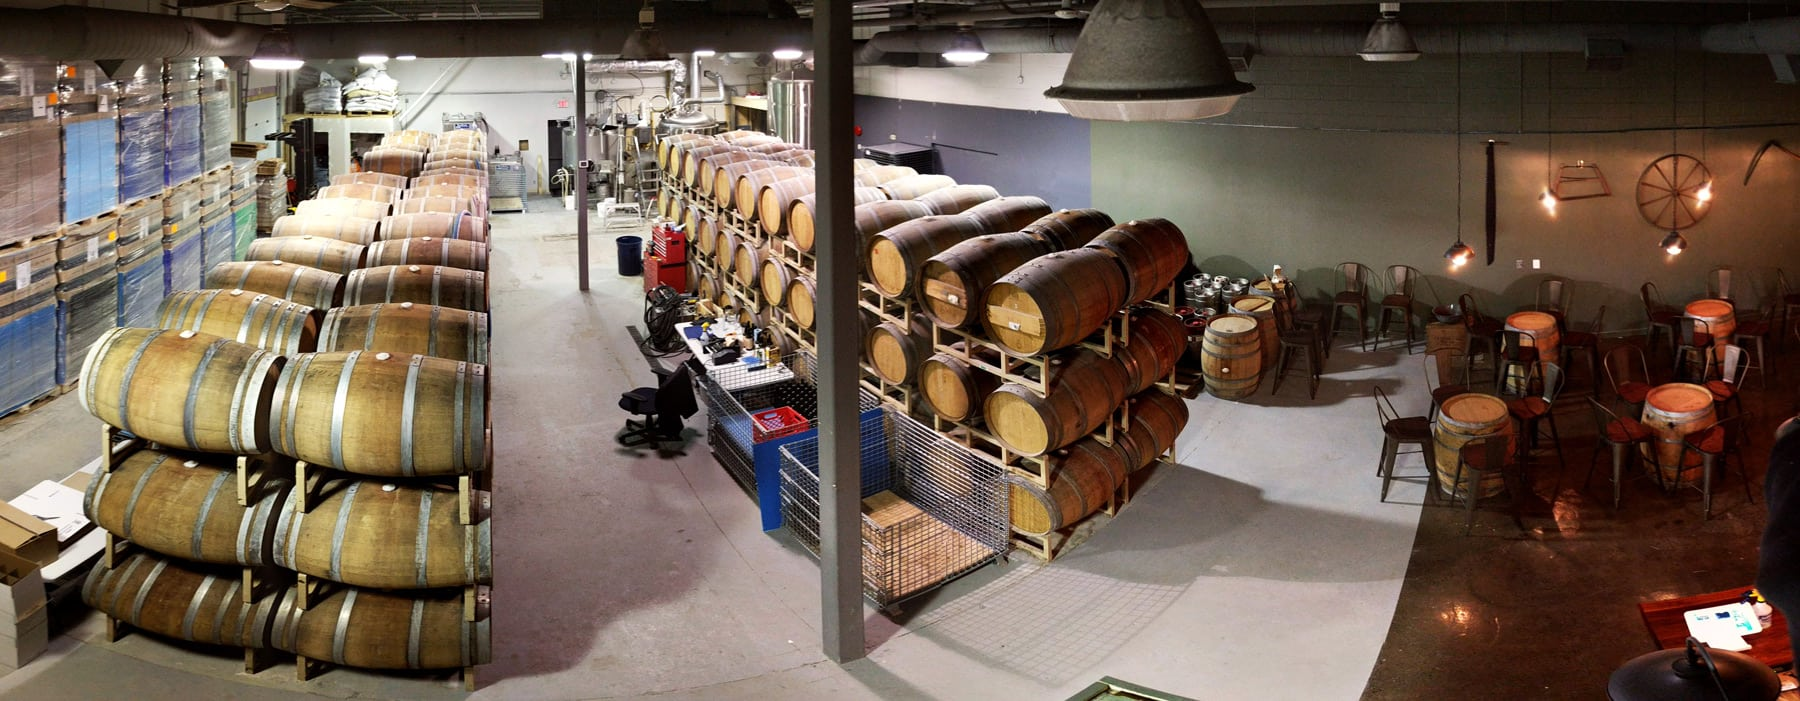 Inside Kanata's Small Pony Barrel Works. Photo: Jordan Duff